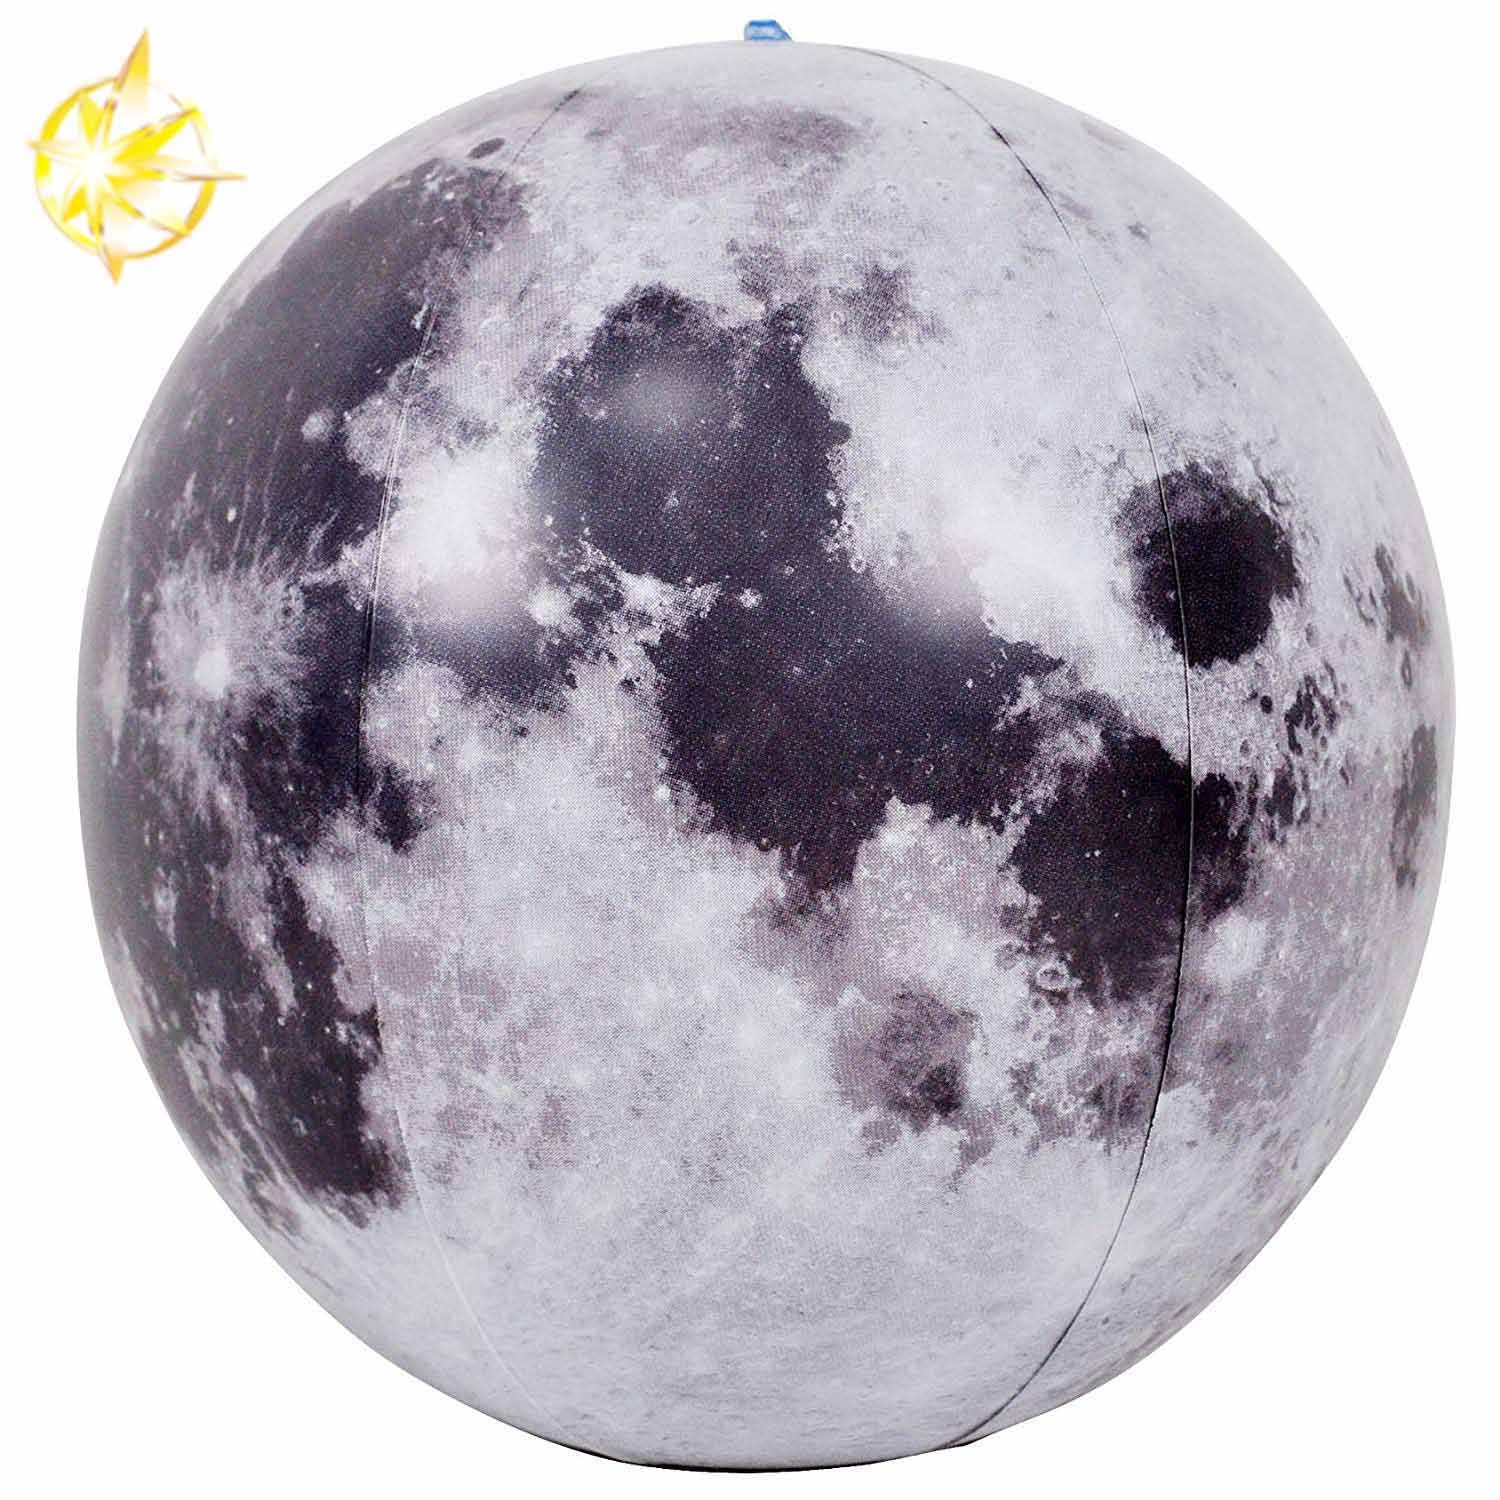 inflatable moon toy beach ball for  kids fun toy  party decoration